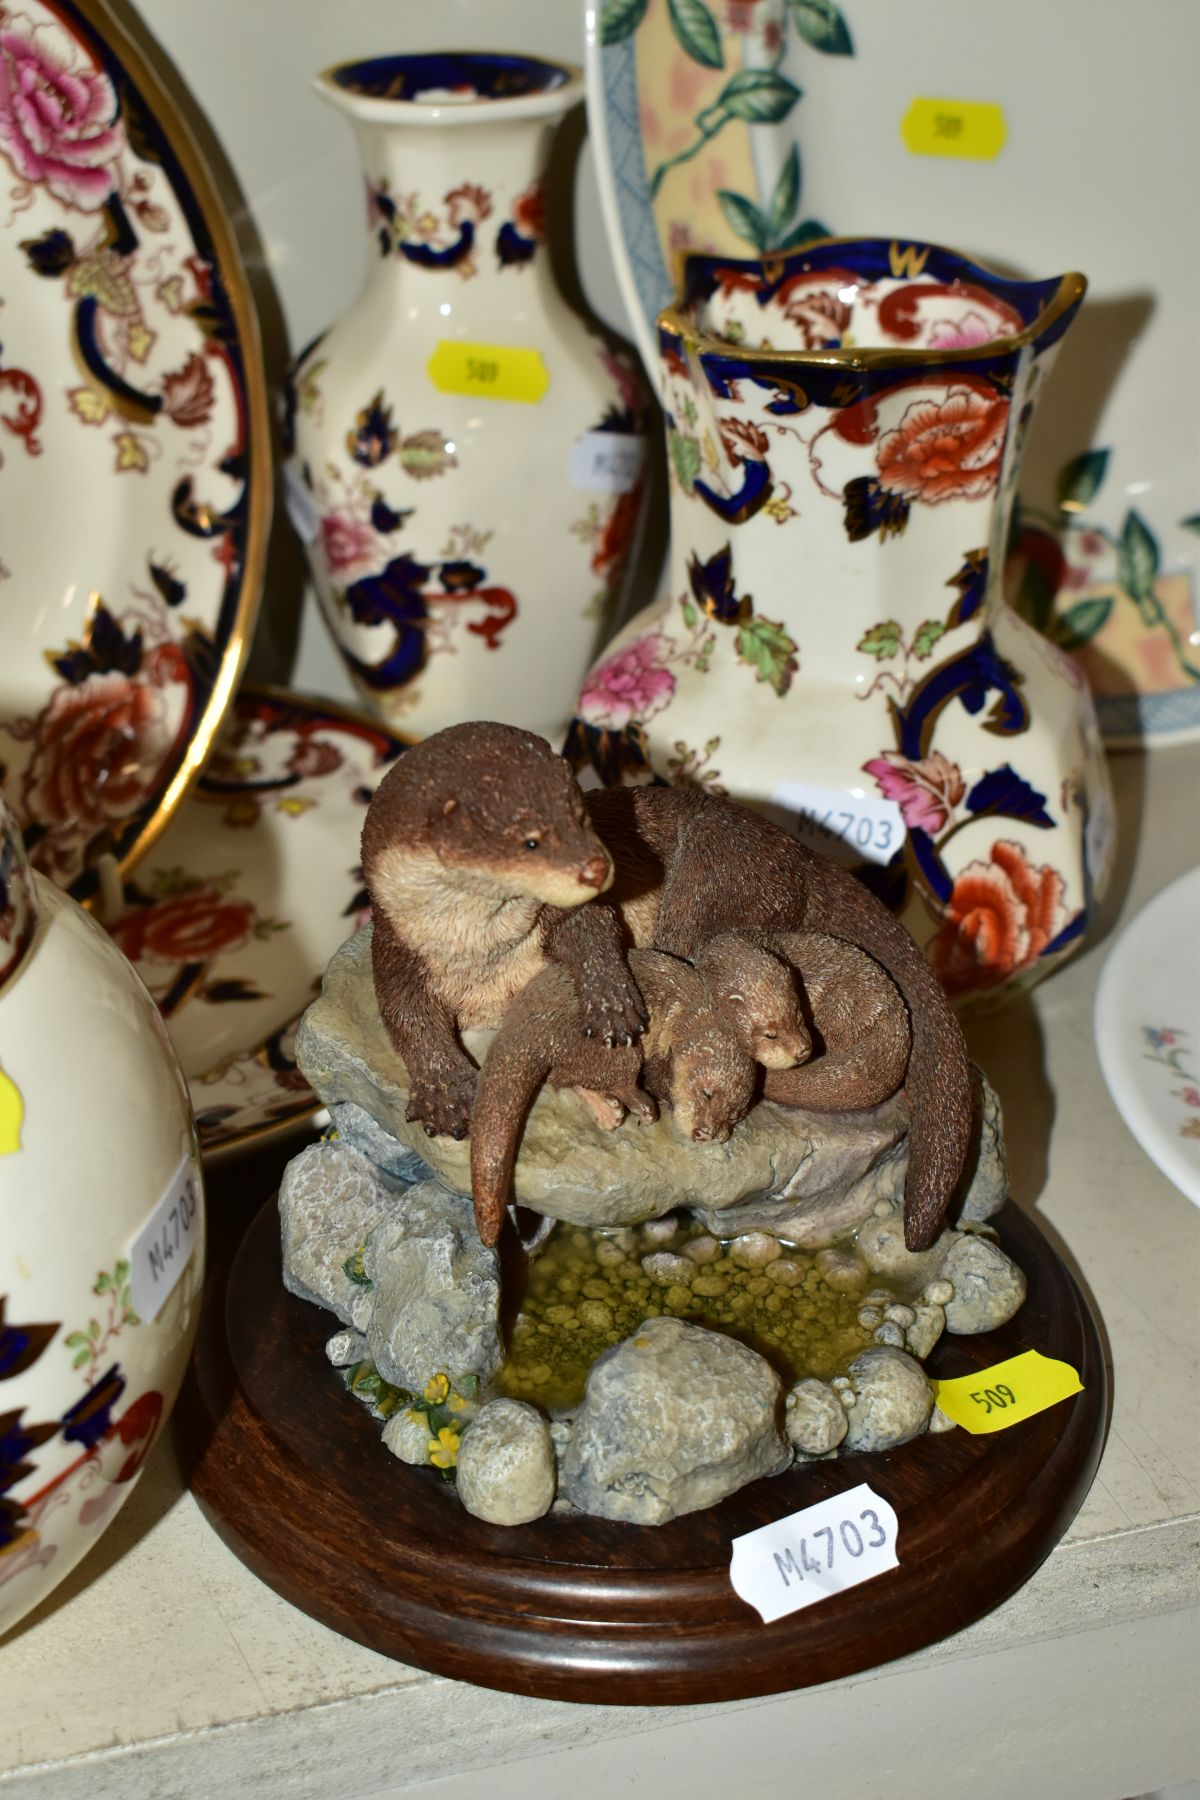 DECORATIVE CERAMICS ETC, to include a boxed Beswick Peter Rabbit, Royal Albert 'Tom Kitten' plate, - Image 6 of 11